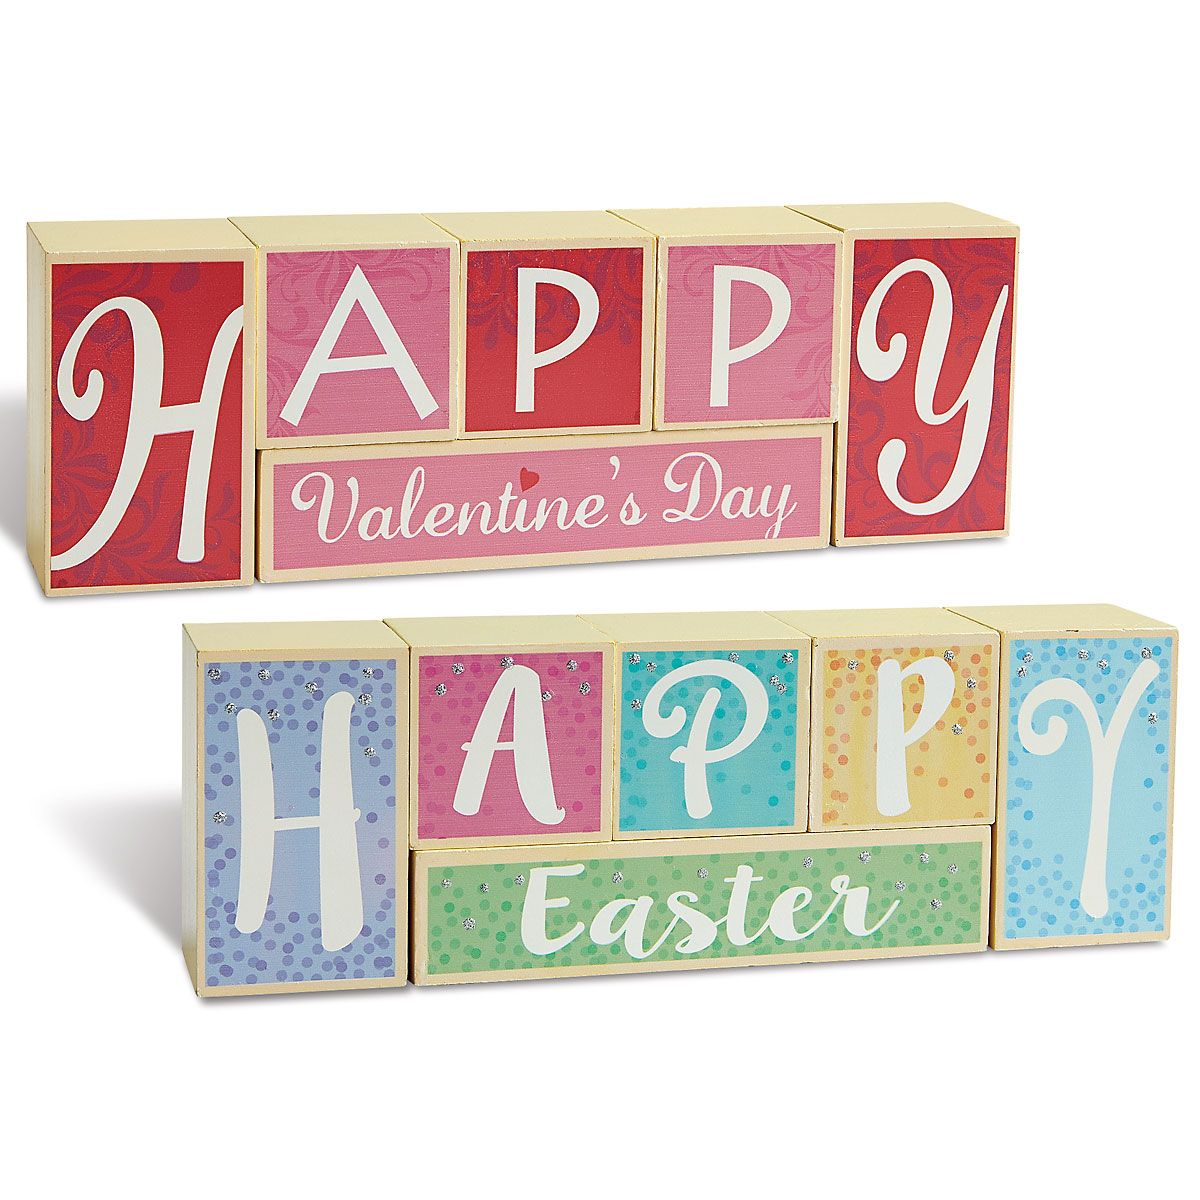 Valentine's/Easter Reversible Wood Block Set